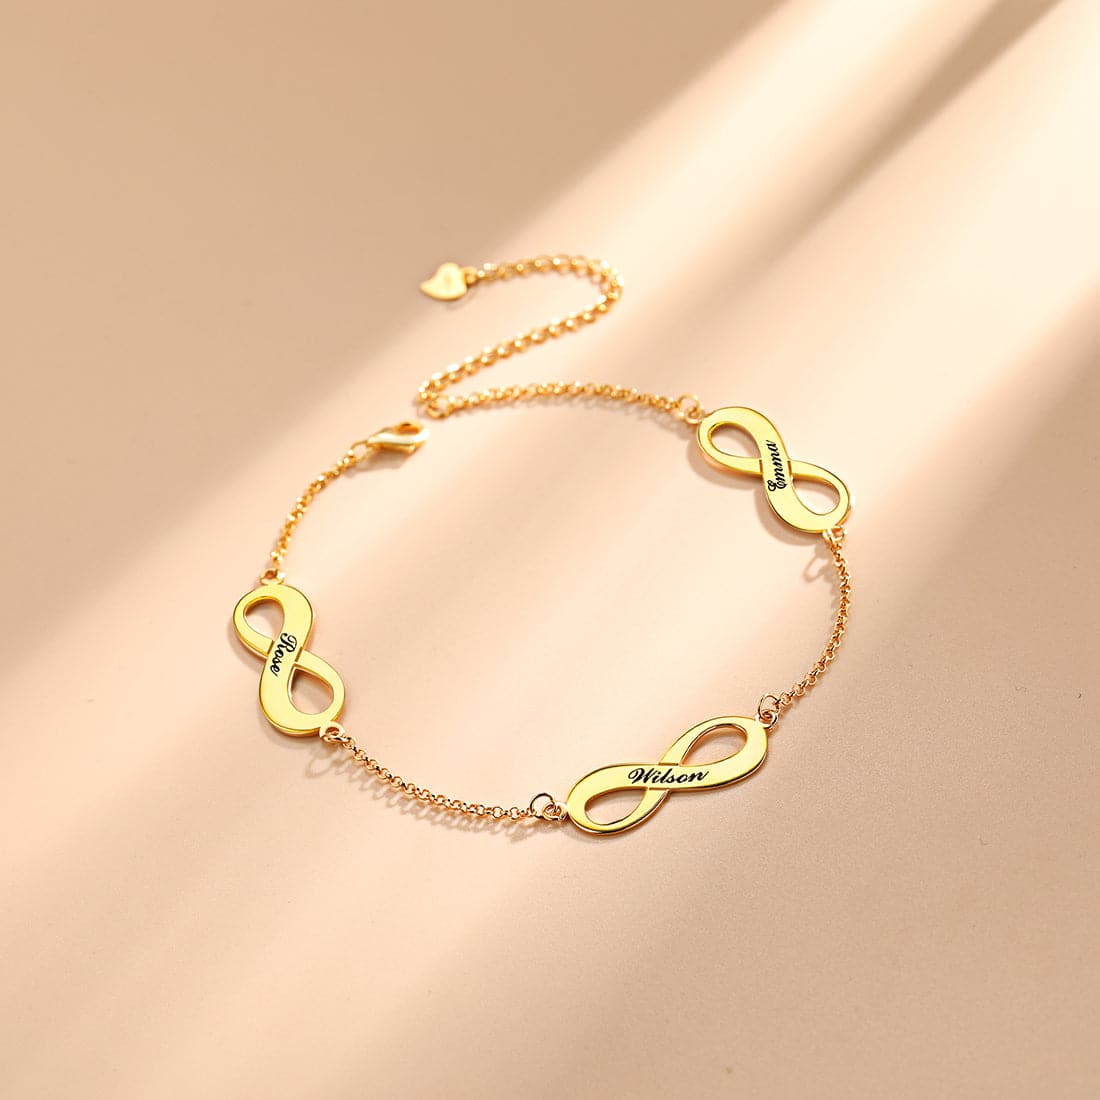 Dainty customized 925 sterling silver 18k gold plated personalized engravable infinity symbol name charm abklet bracelet for women girls, symbolizes eternity and everlasting love & friendship.